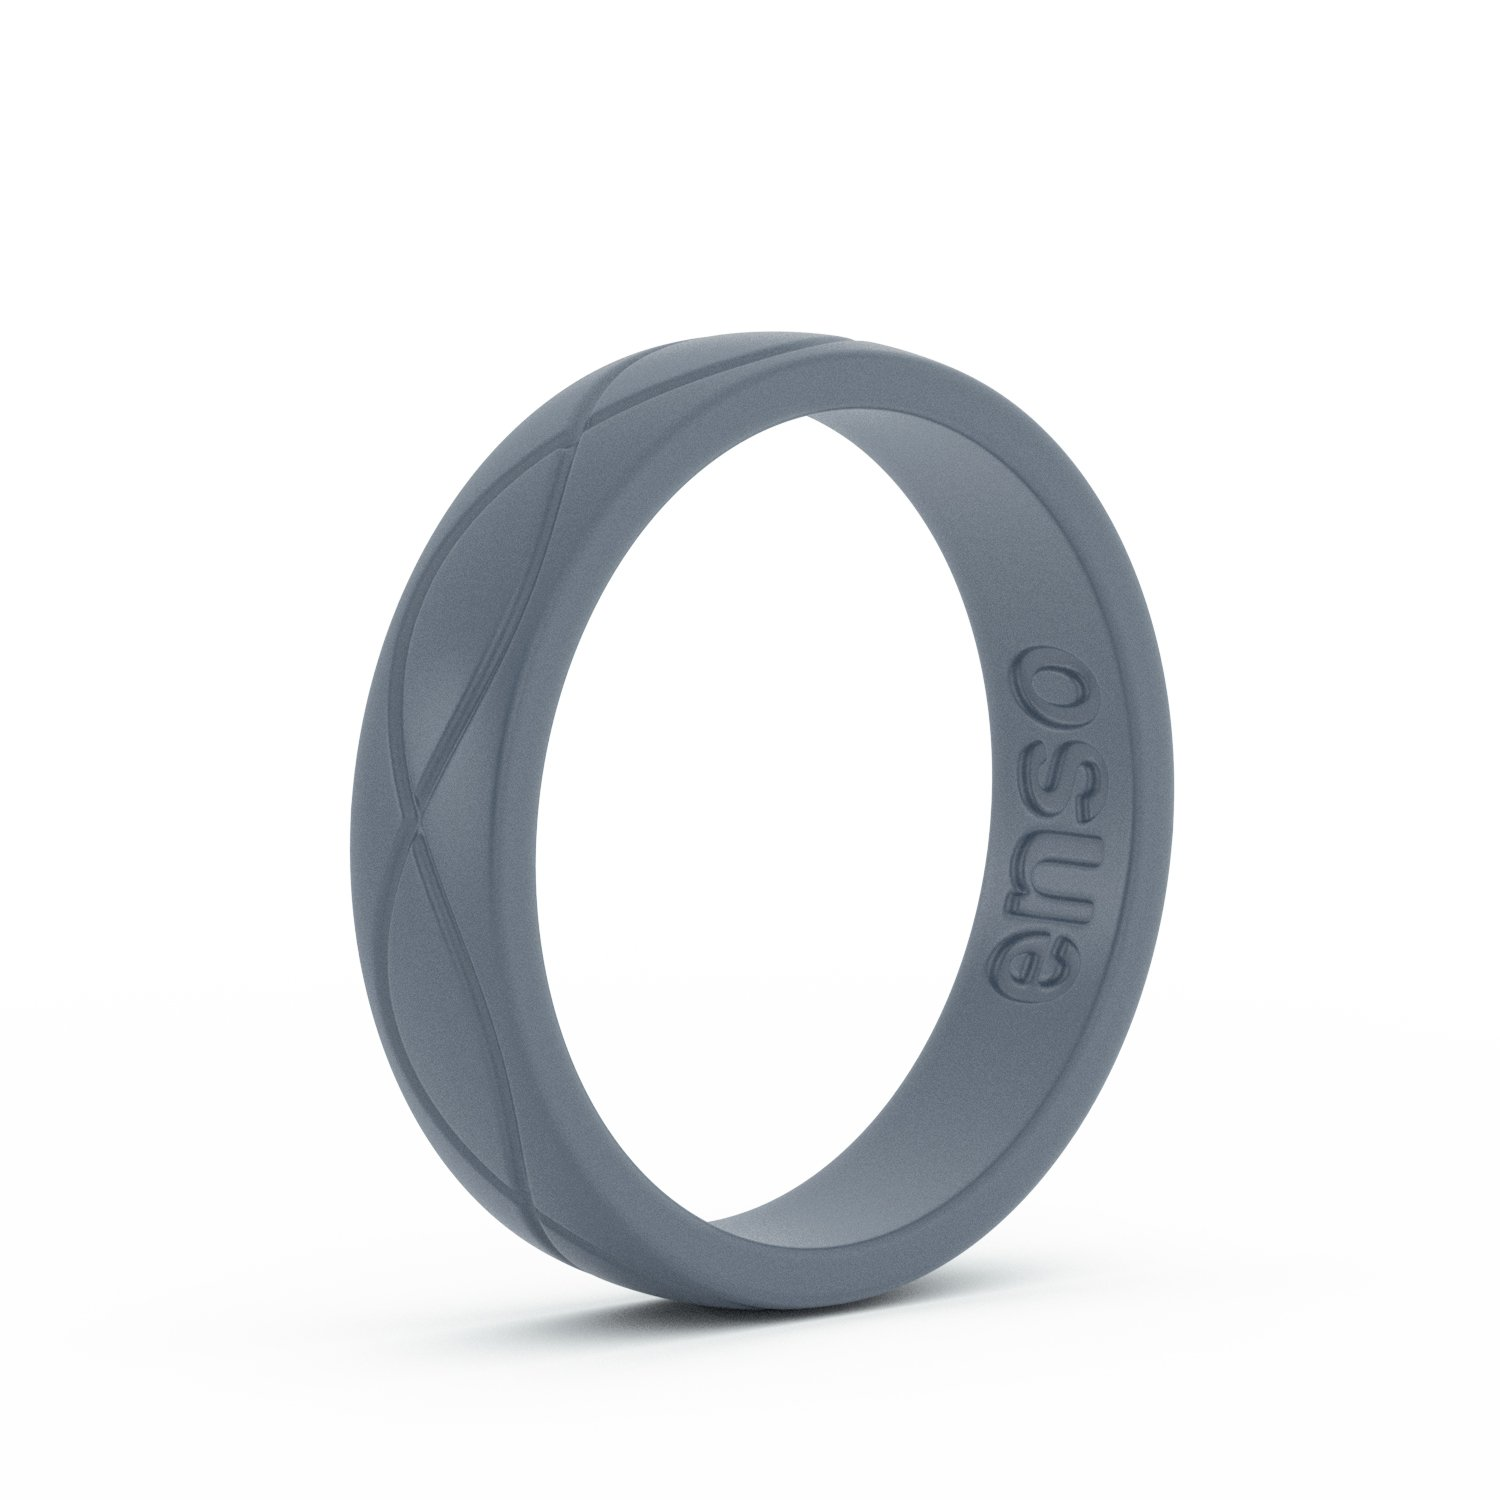 Enso Womens Infinity Silicone Ring, Slate Blue 5 by Enso Rings (Image #6)